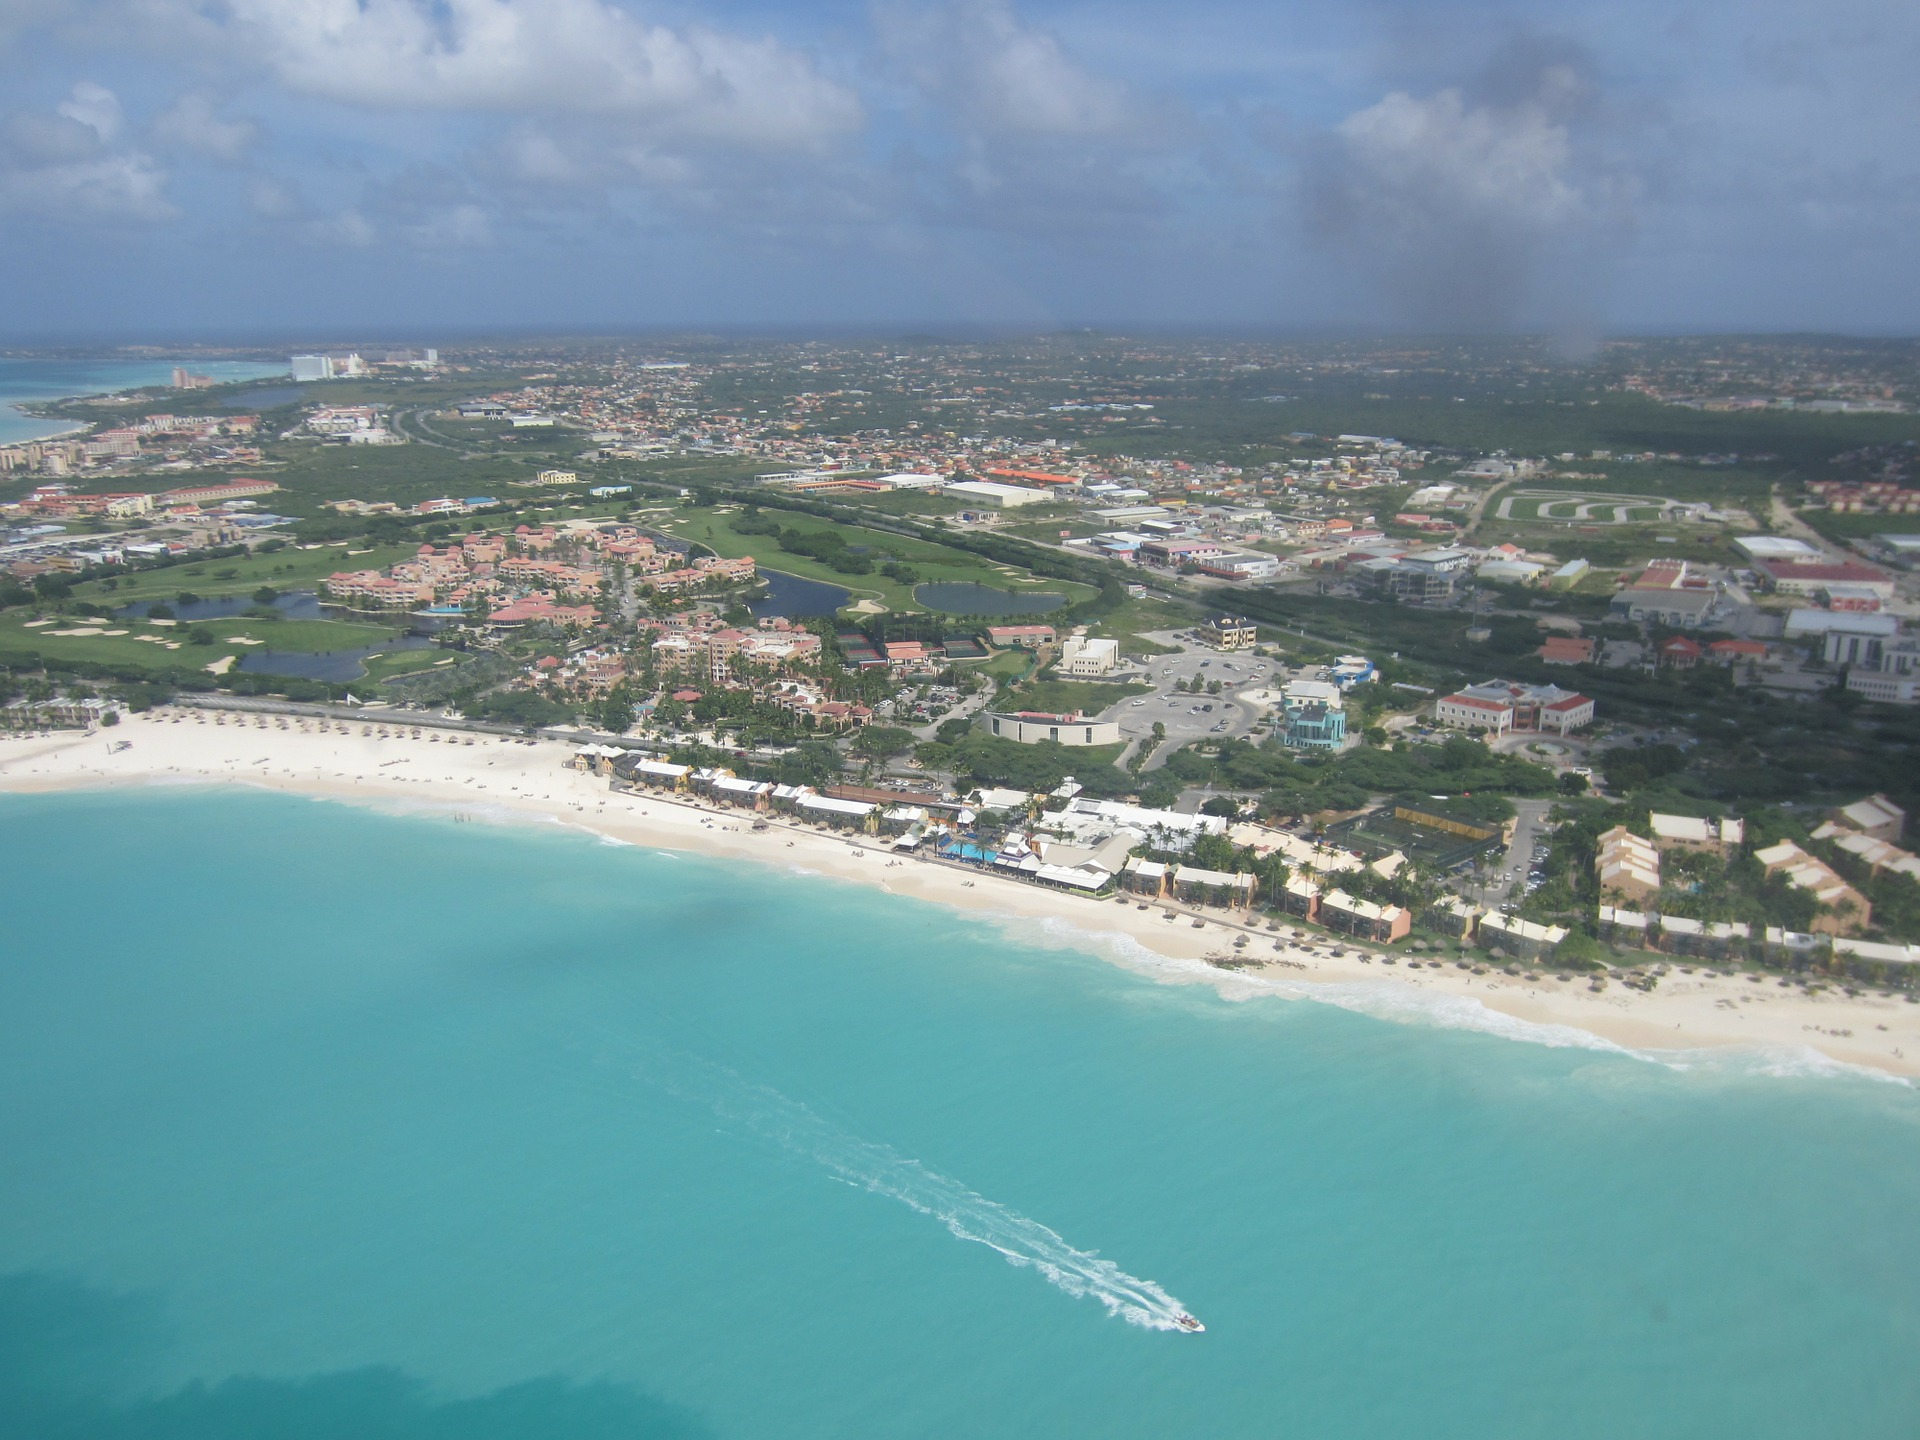 Aerial view of beach in Aruba